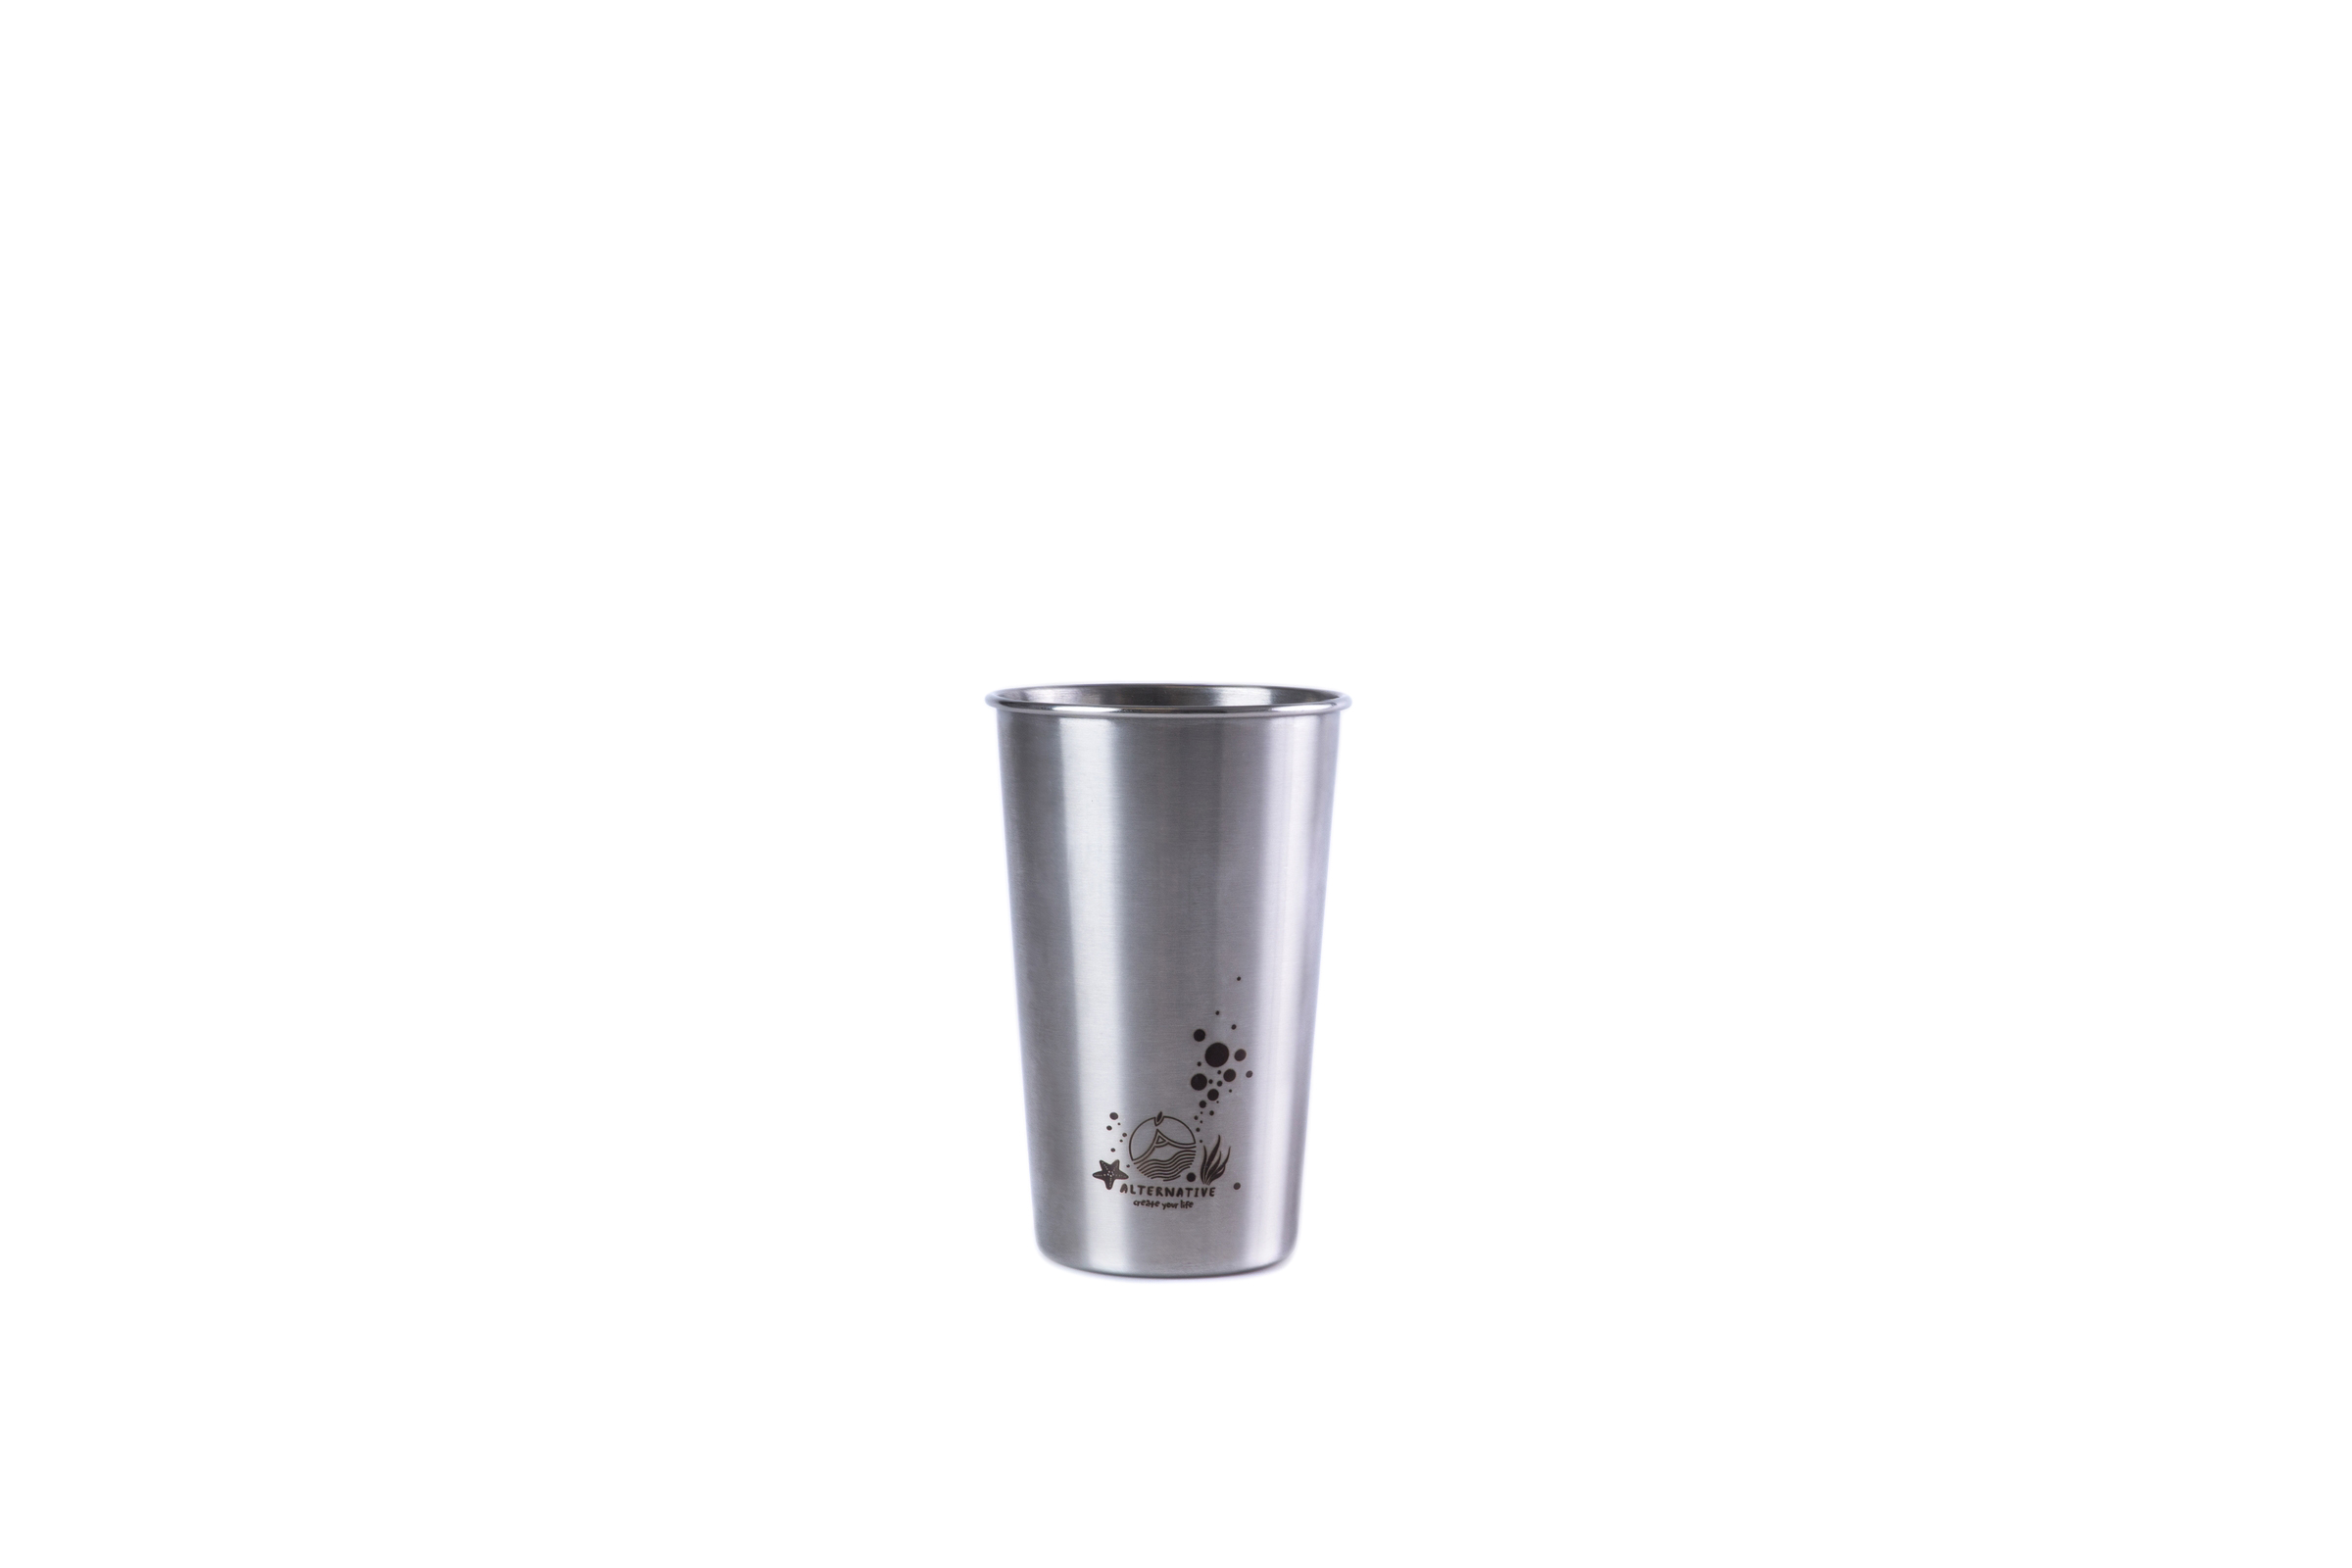 eco stainless steel cup